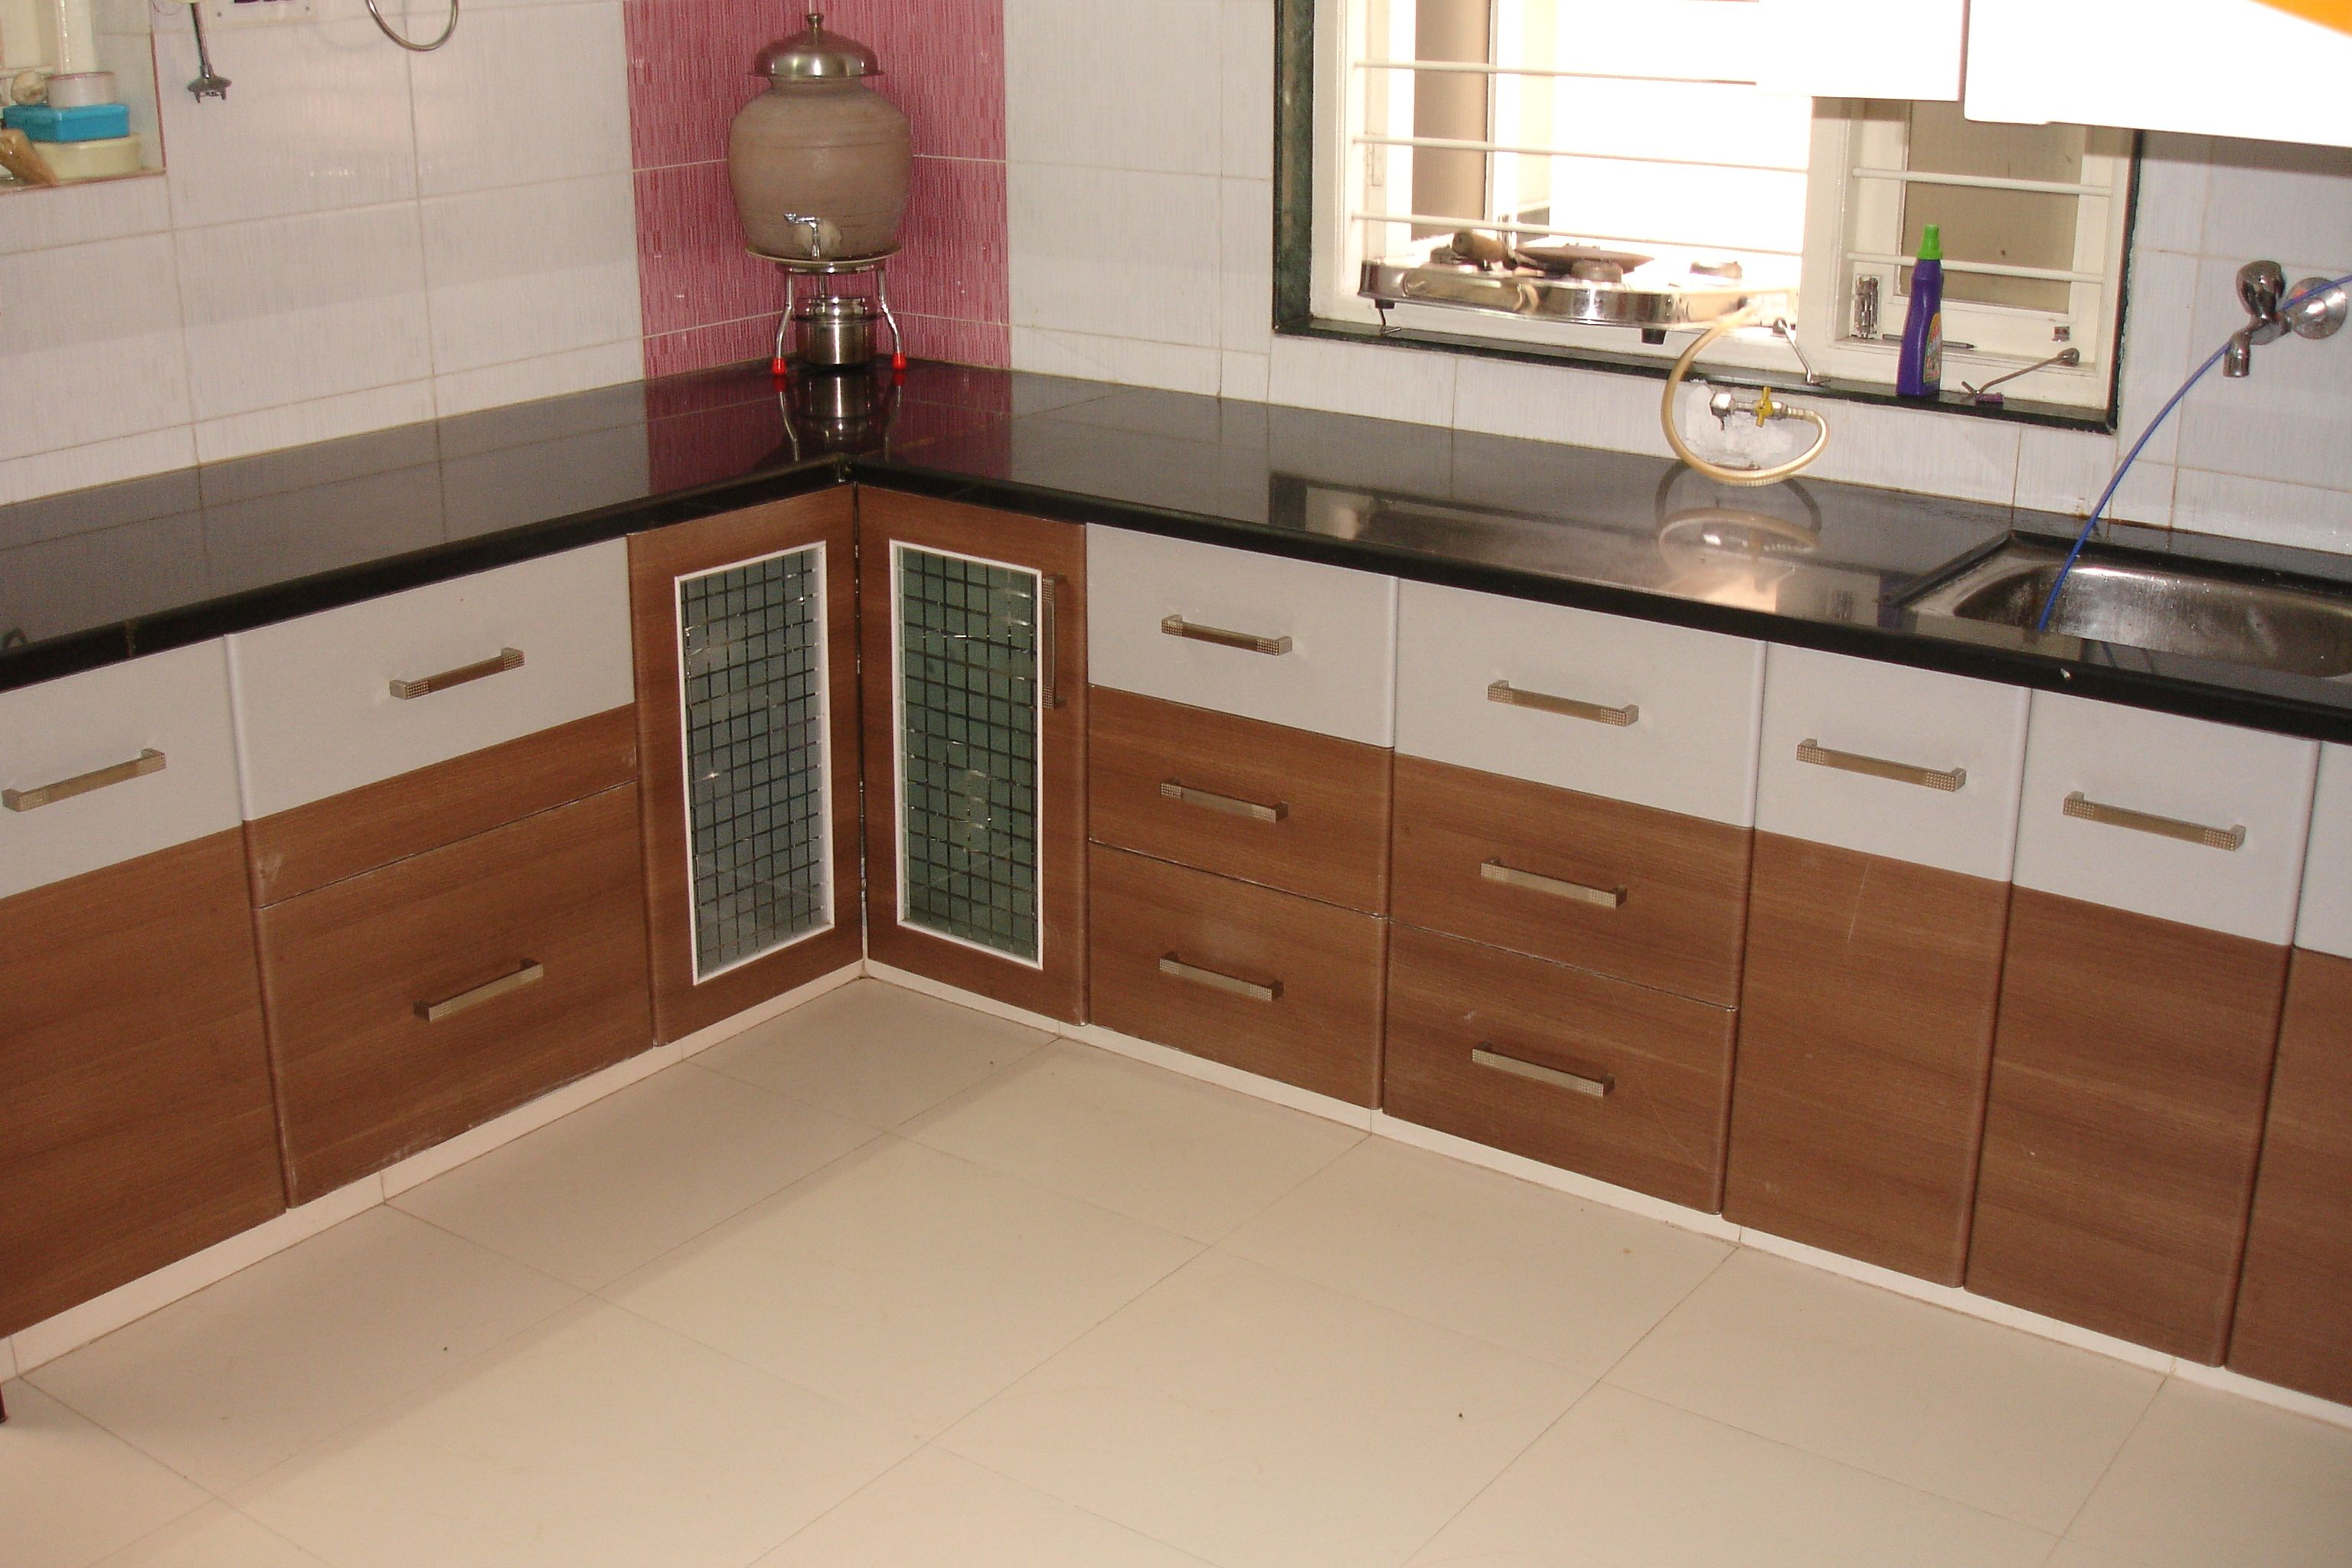 Kitchen Design Brands Inspiration Modular Kitchen From Rawat Furniture  Rawat's Moduclar Kitchens Design Inspiration